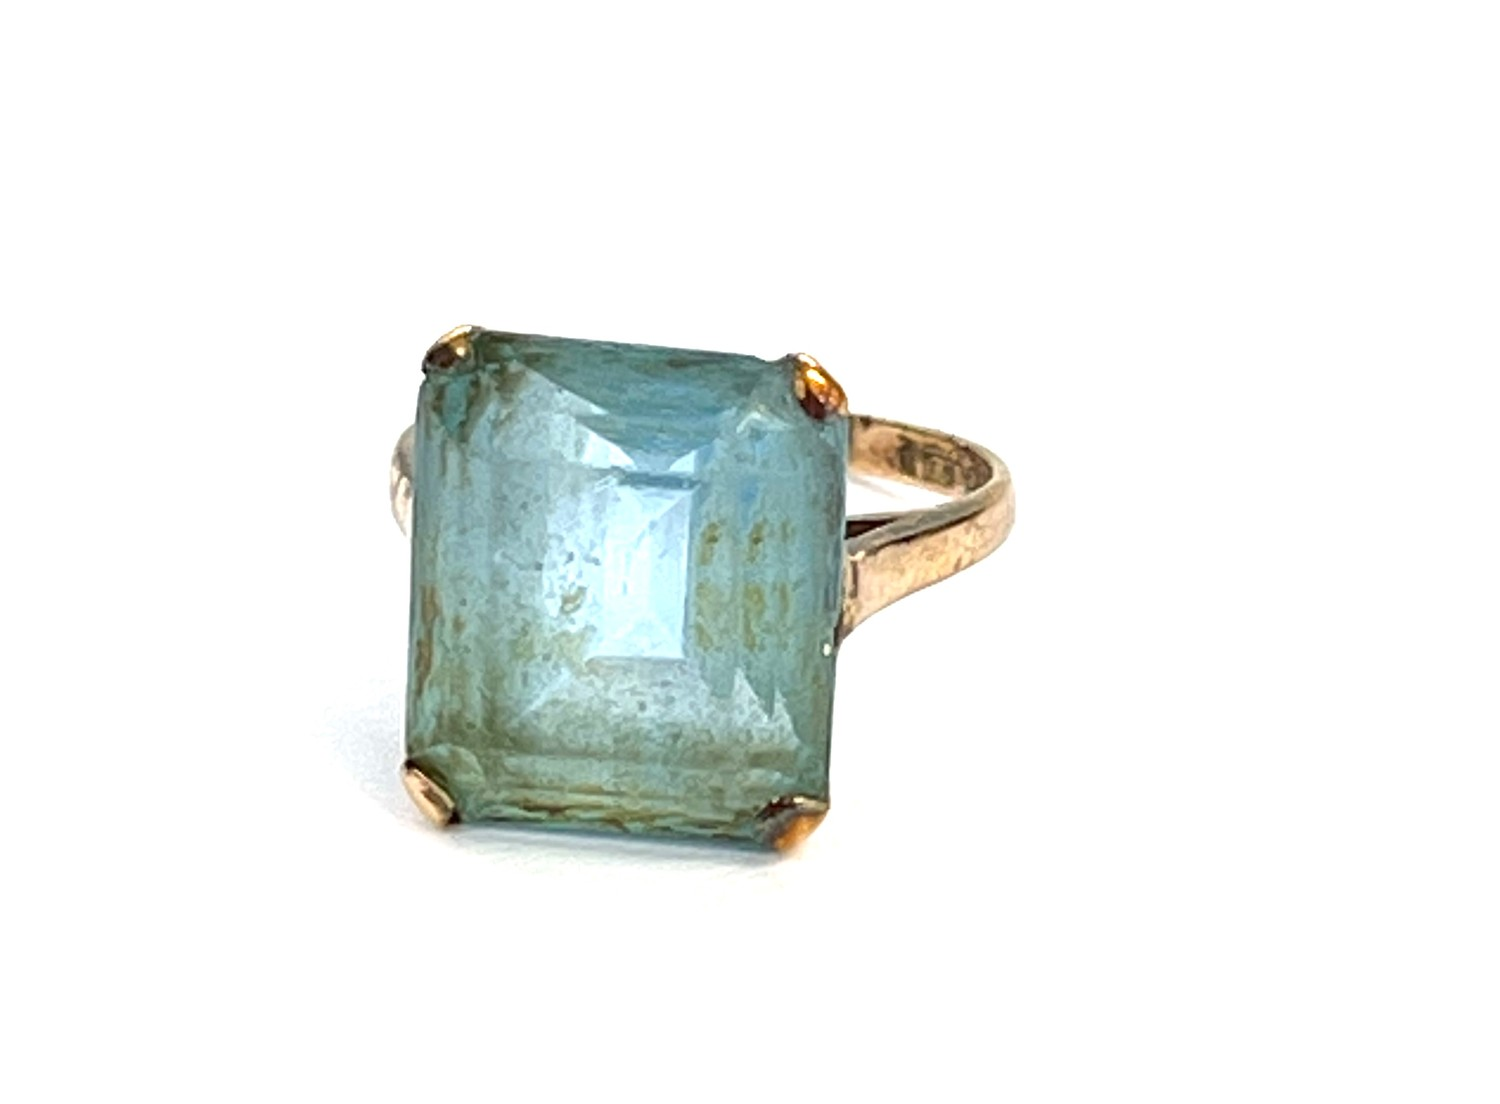 9ct gold stone set cocktail ring - Image 3 of 4